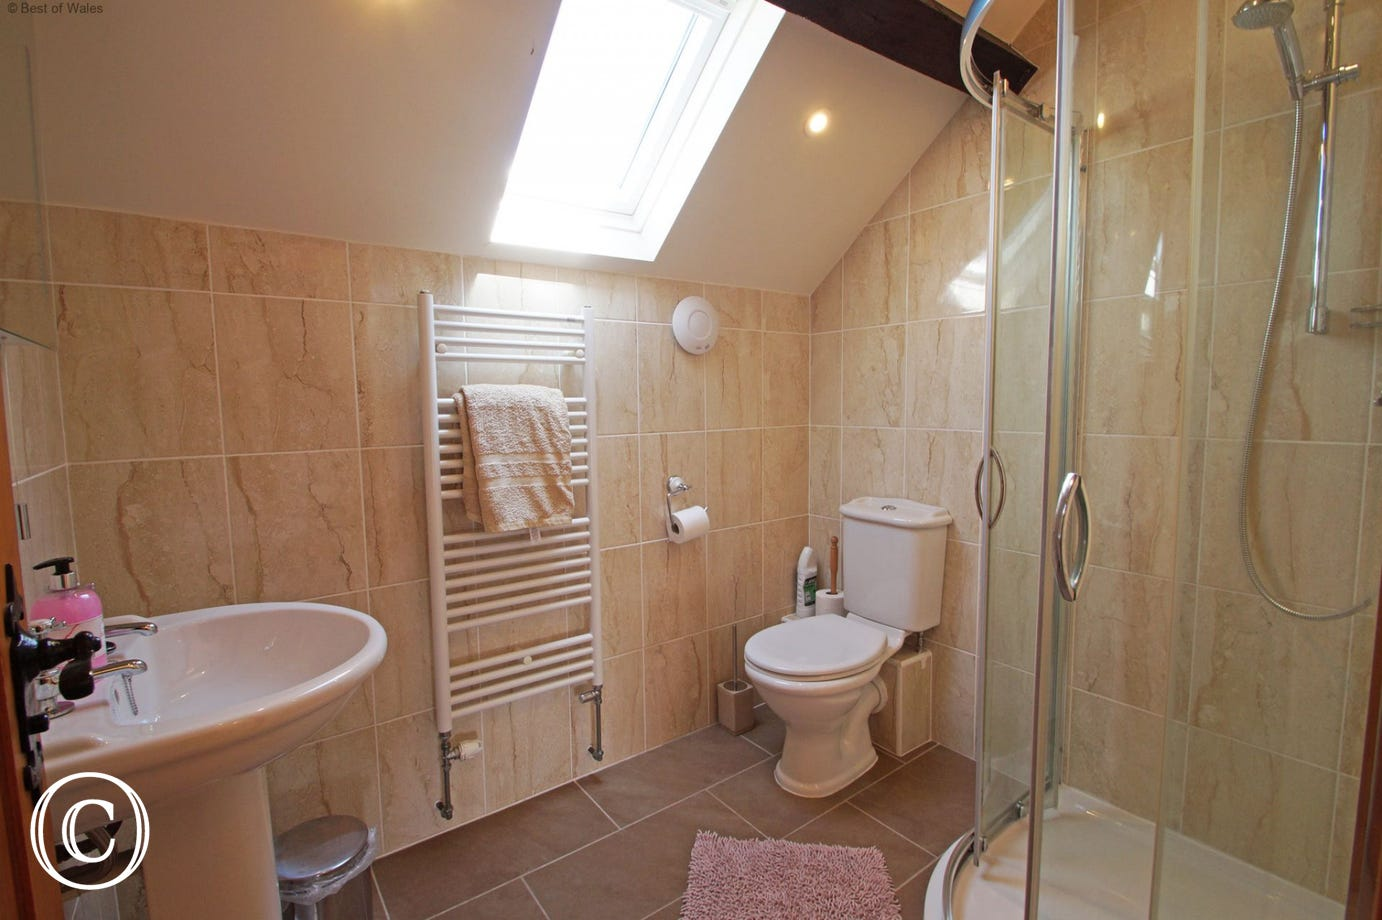 Fully tiled upstairs shower room with heated towel rail, WC and basin.